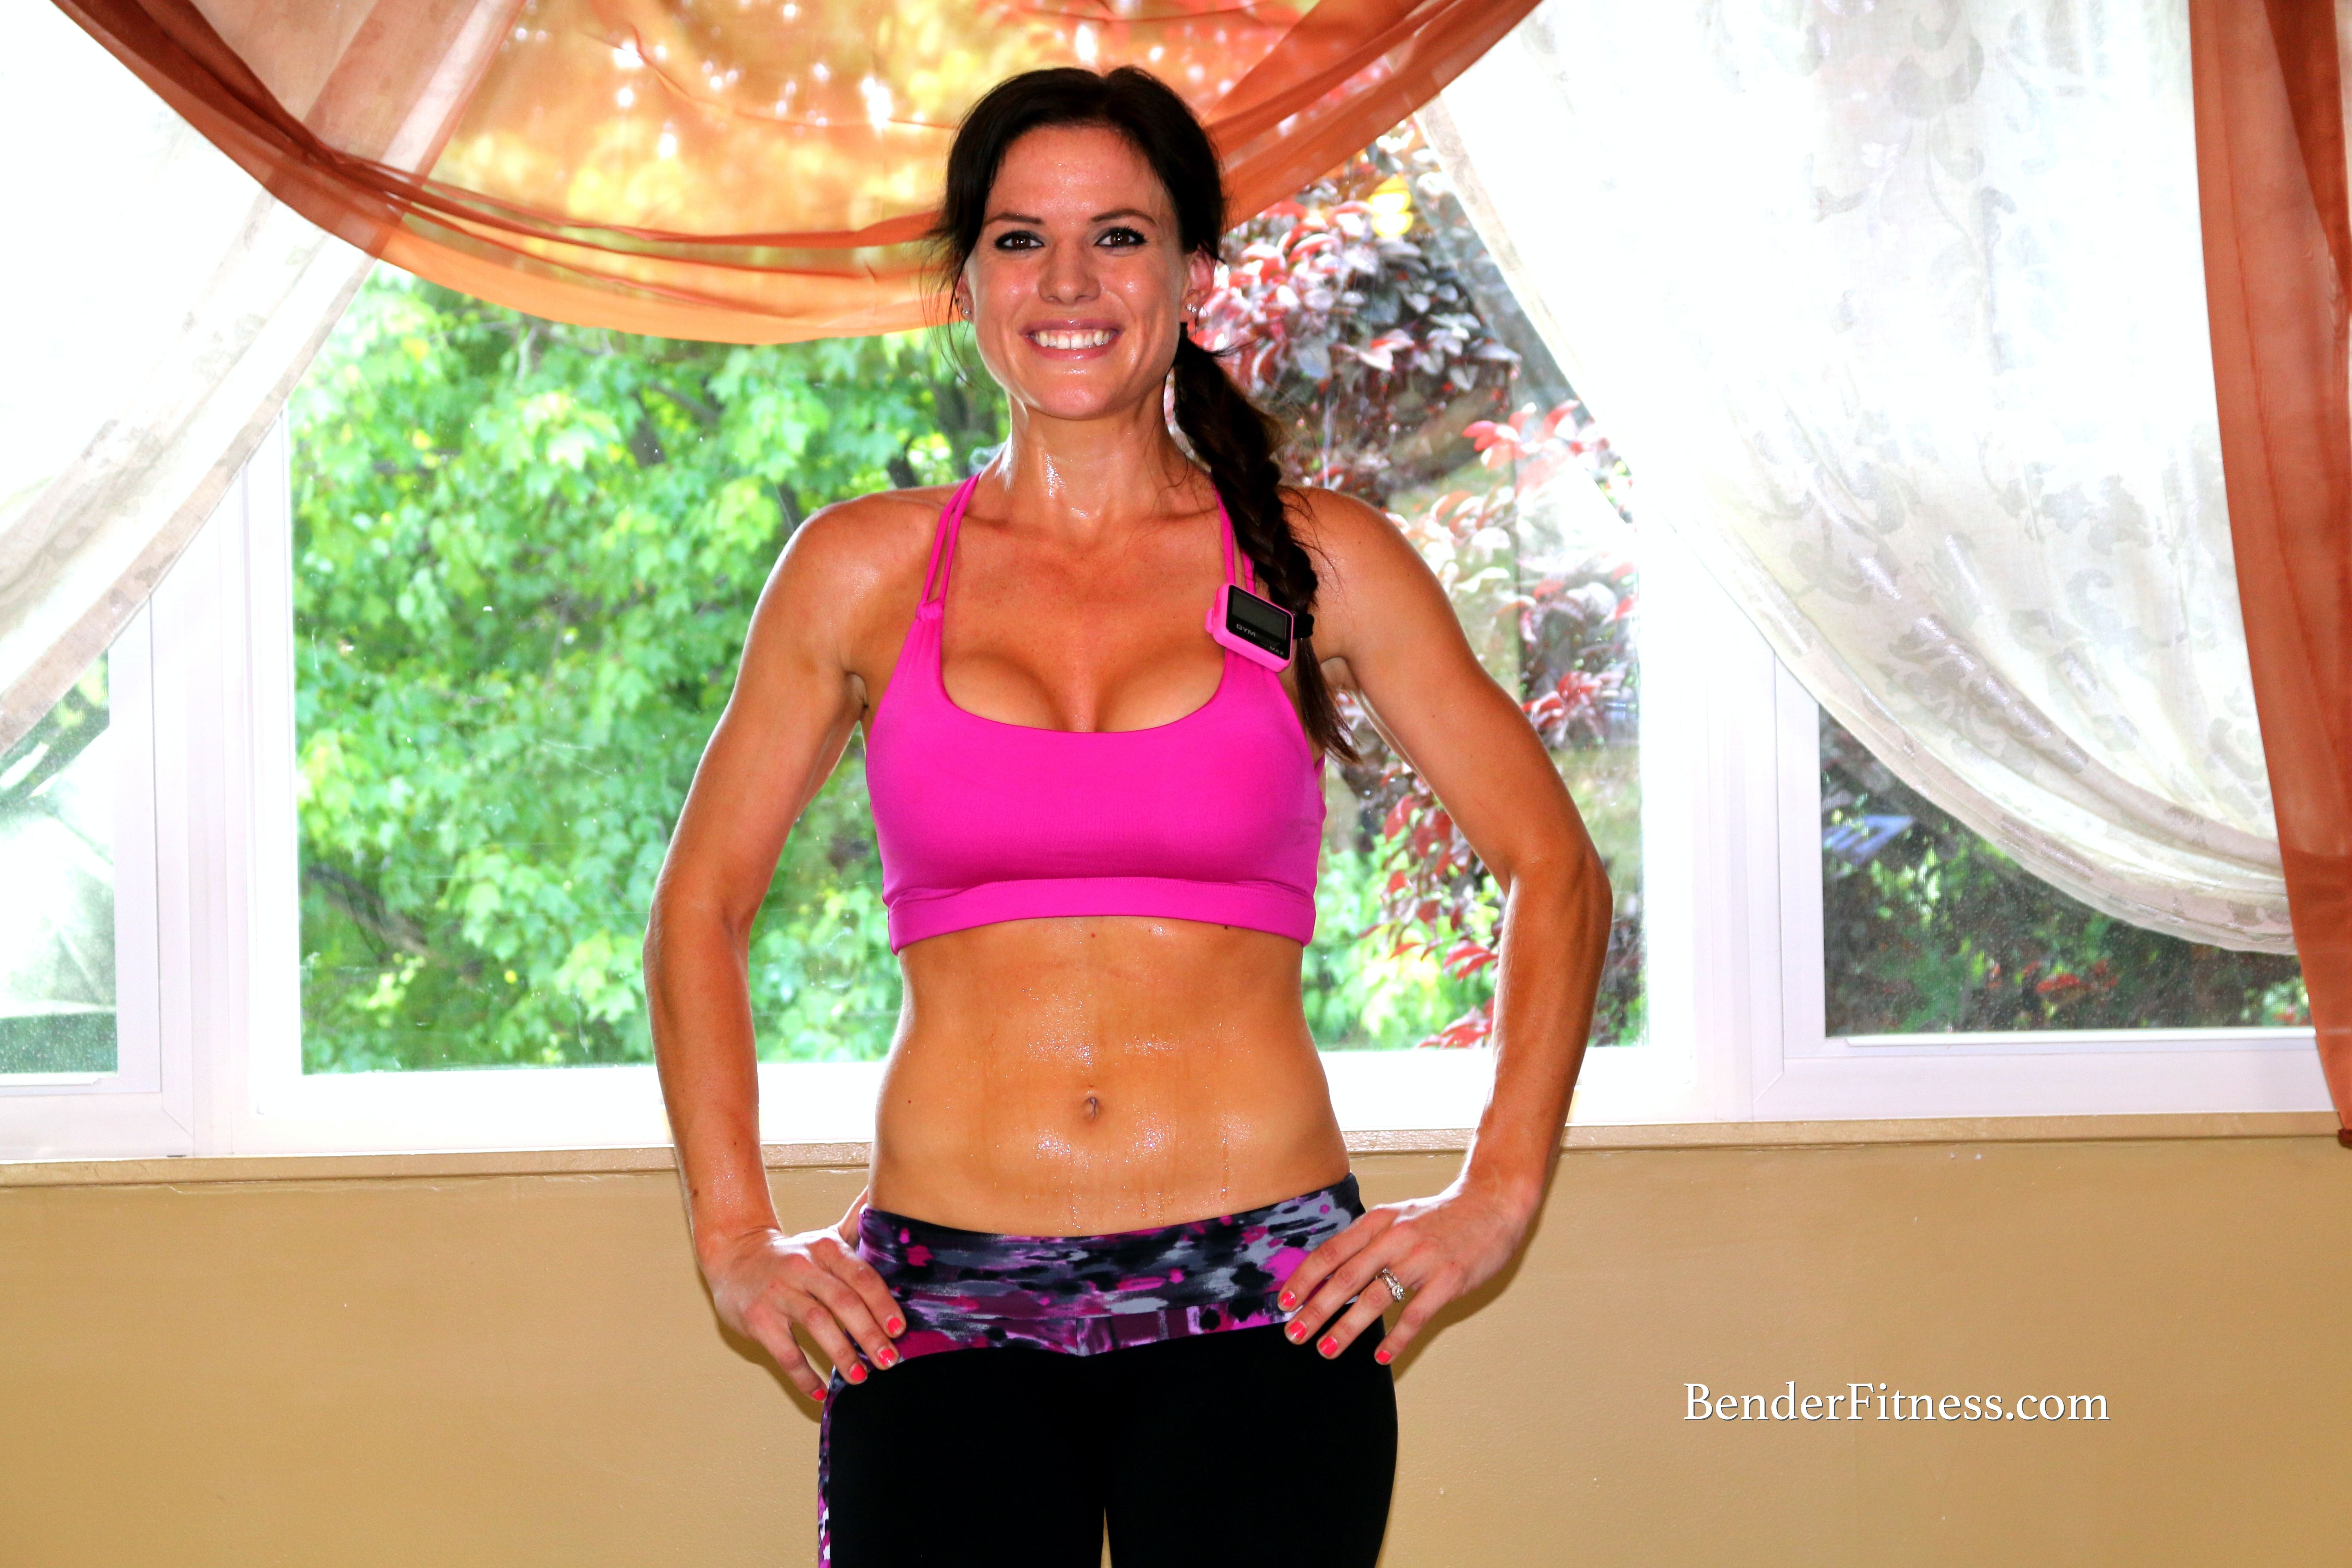 10 Minutes Per Round: Quick Body Weight Workout